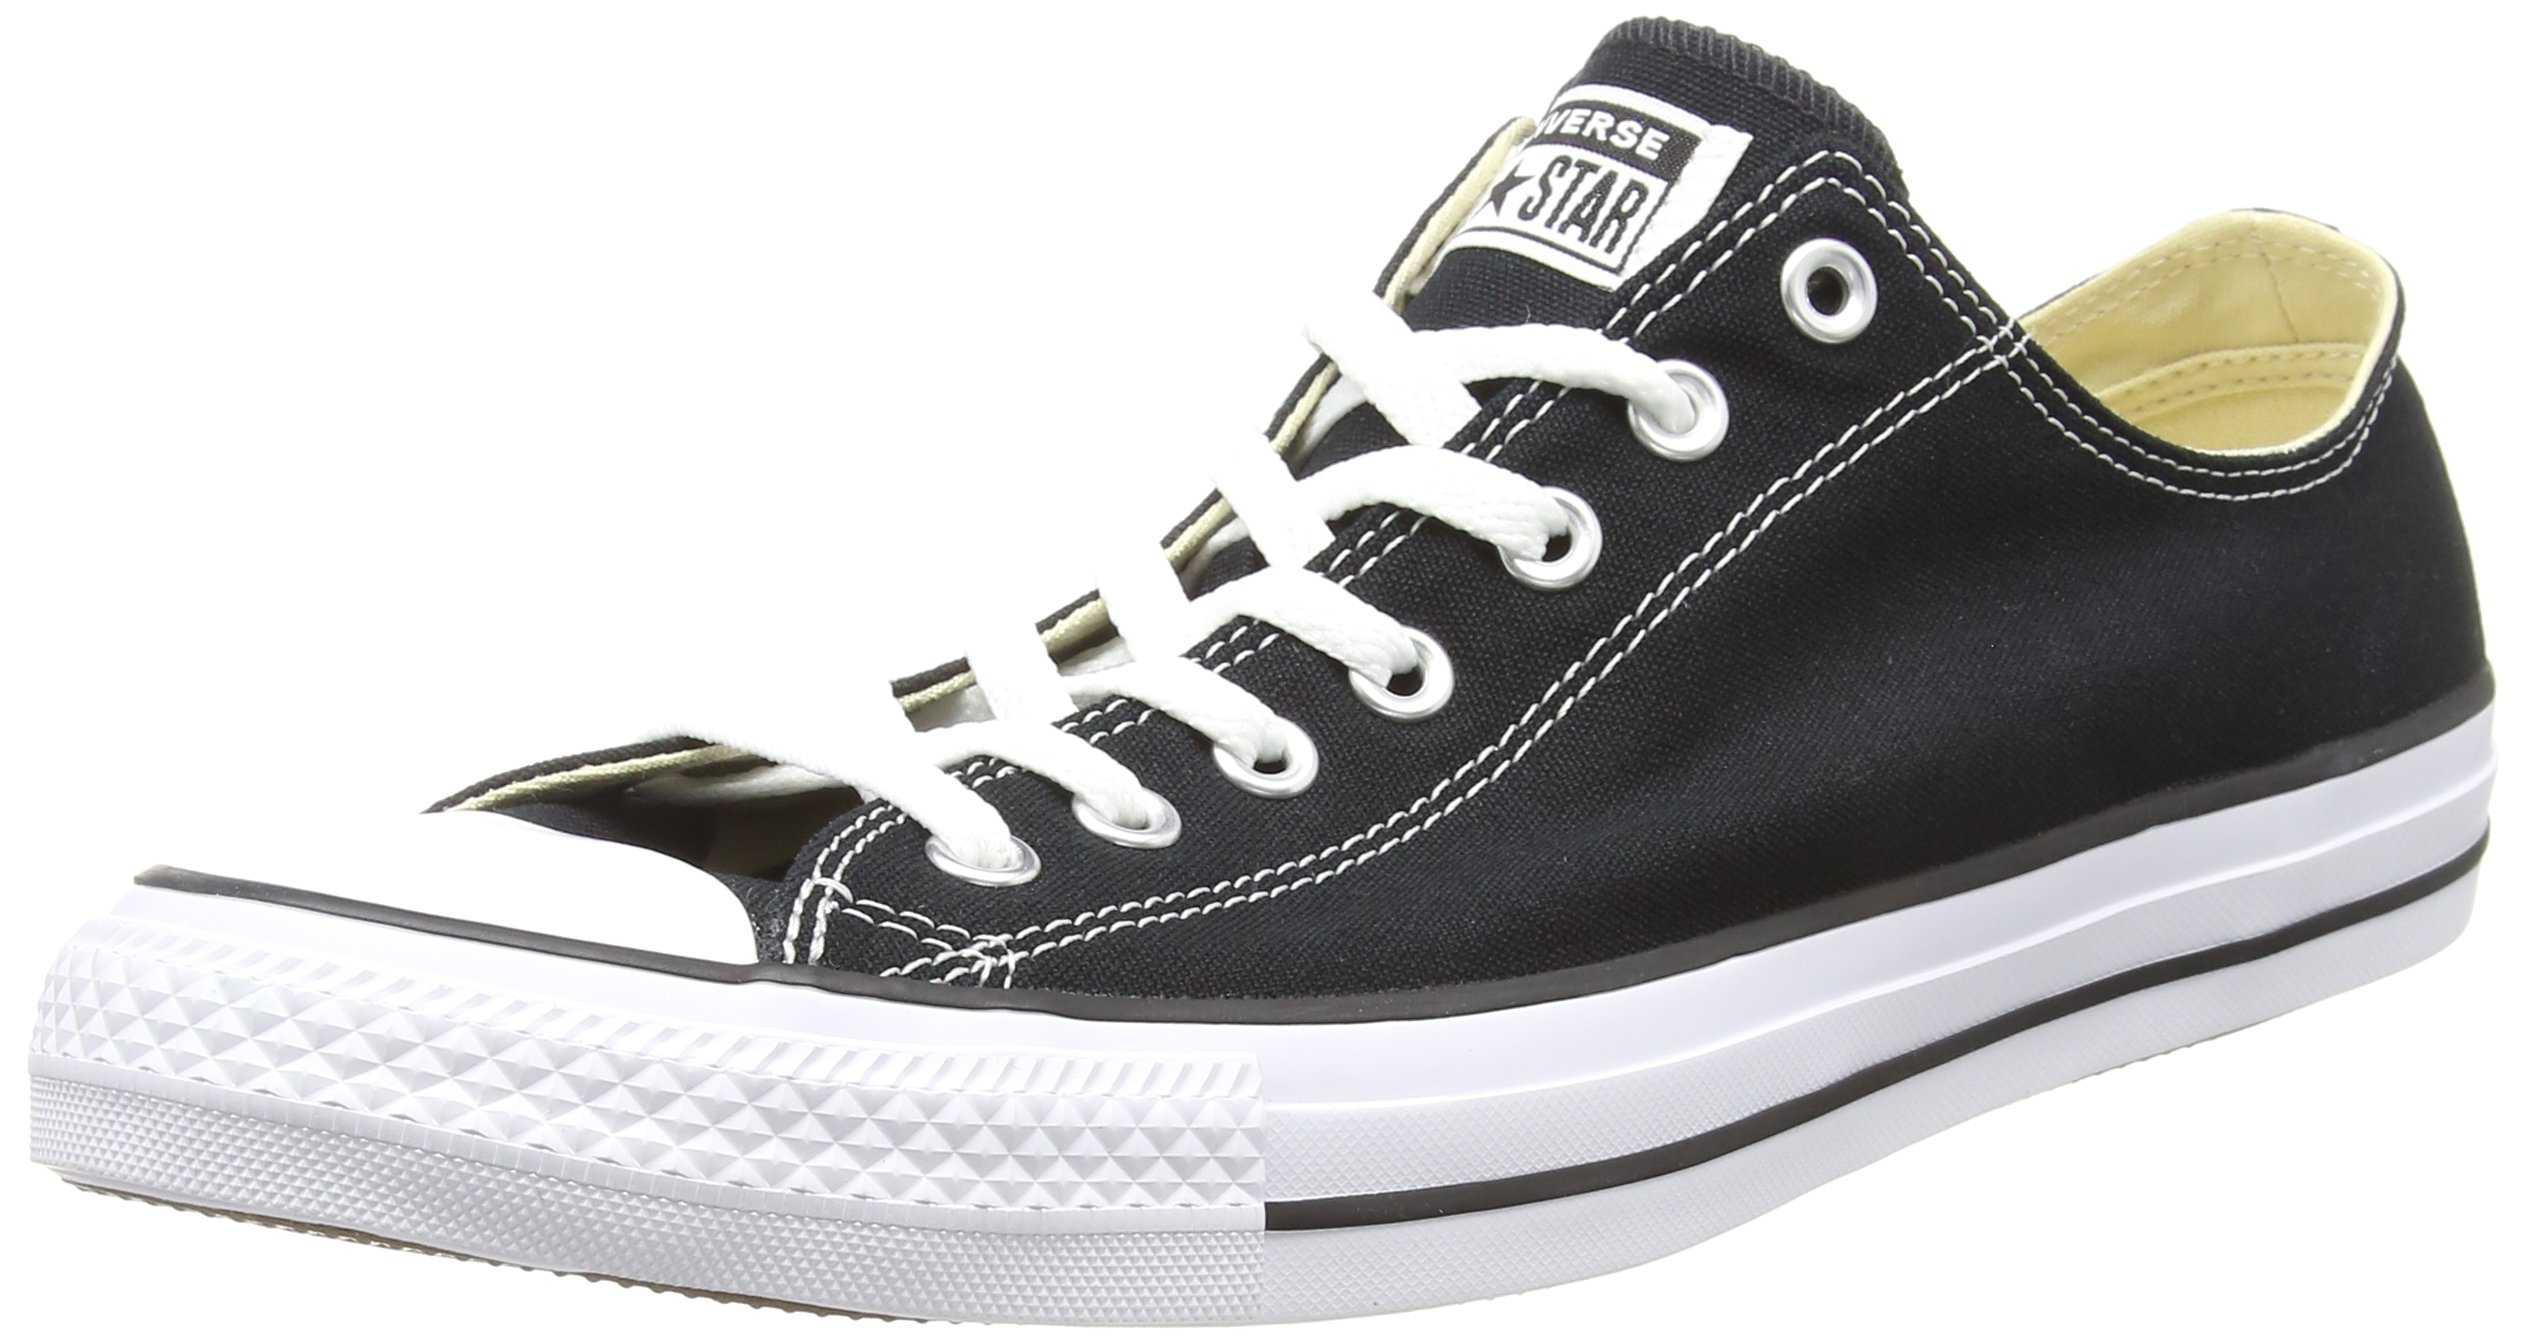 Converse Unisex Chuck Taylor All Star Ox Canvas Sneakers (13.5 B(M) US Women / 11.5 D(M) US Men, Black)